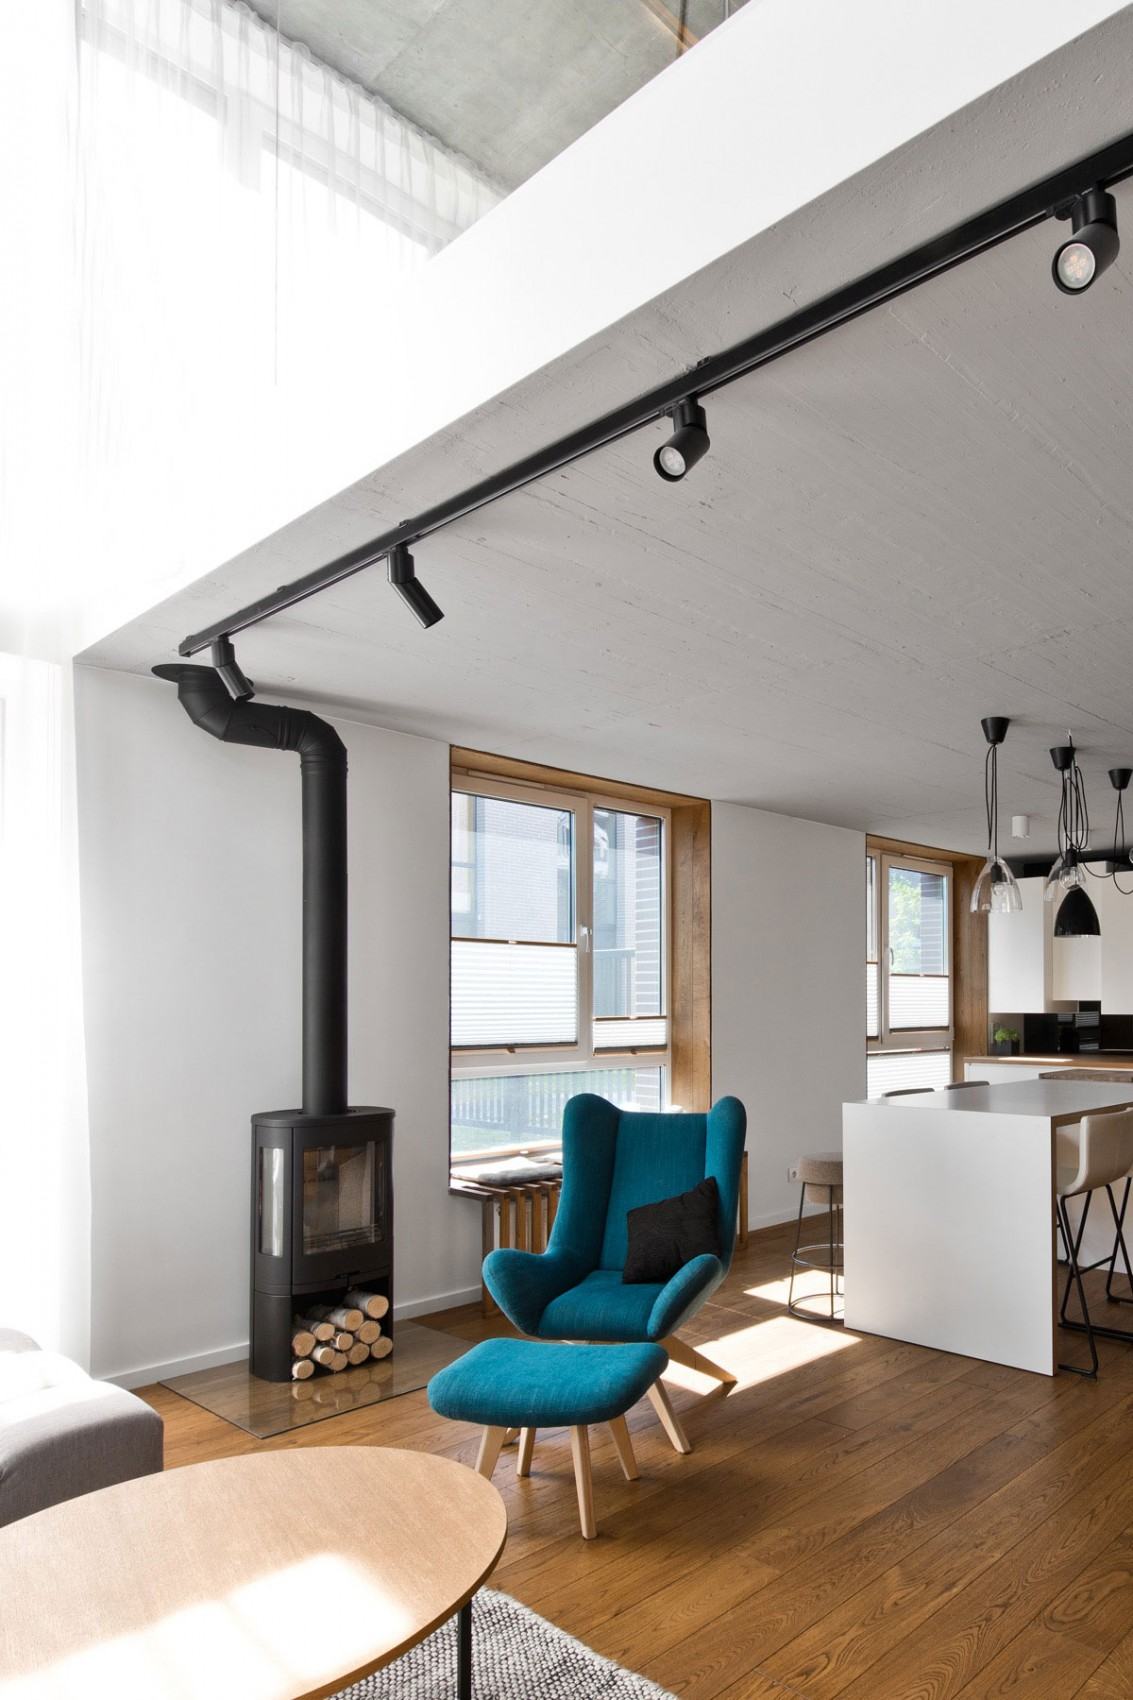 New York Apartment Interior Small Spaces